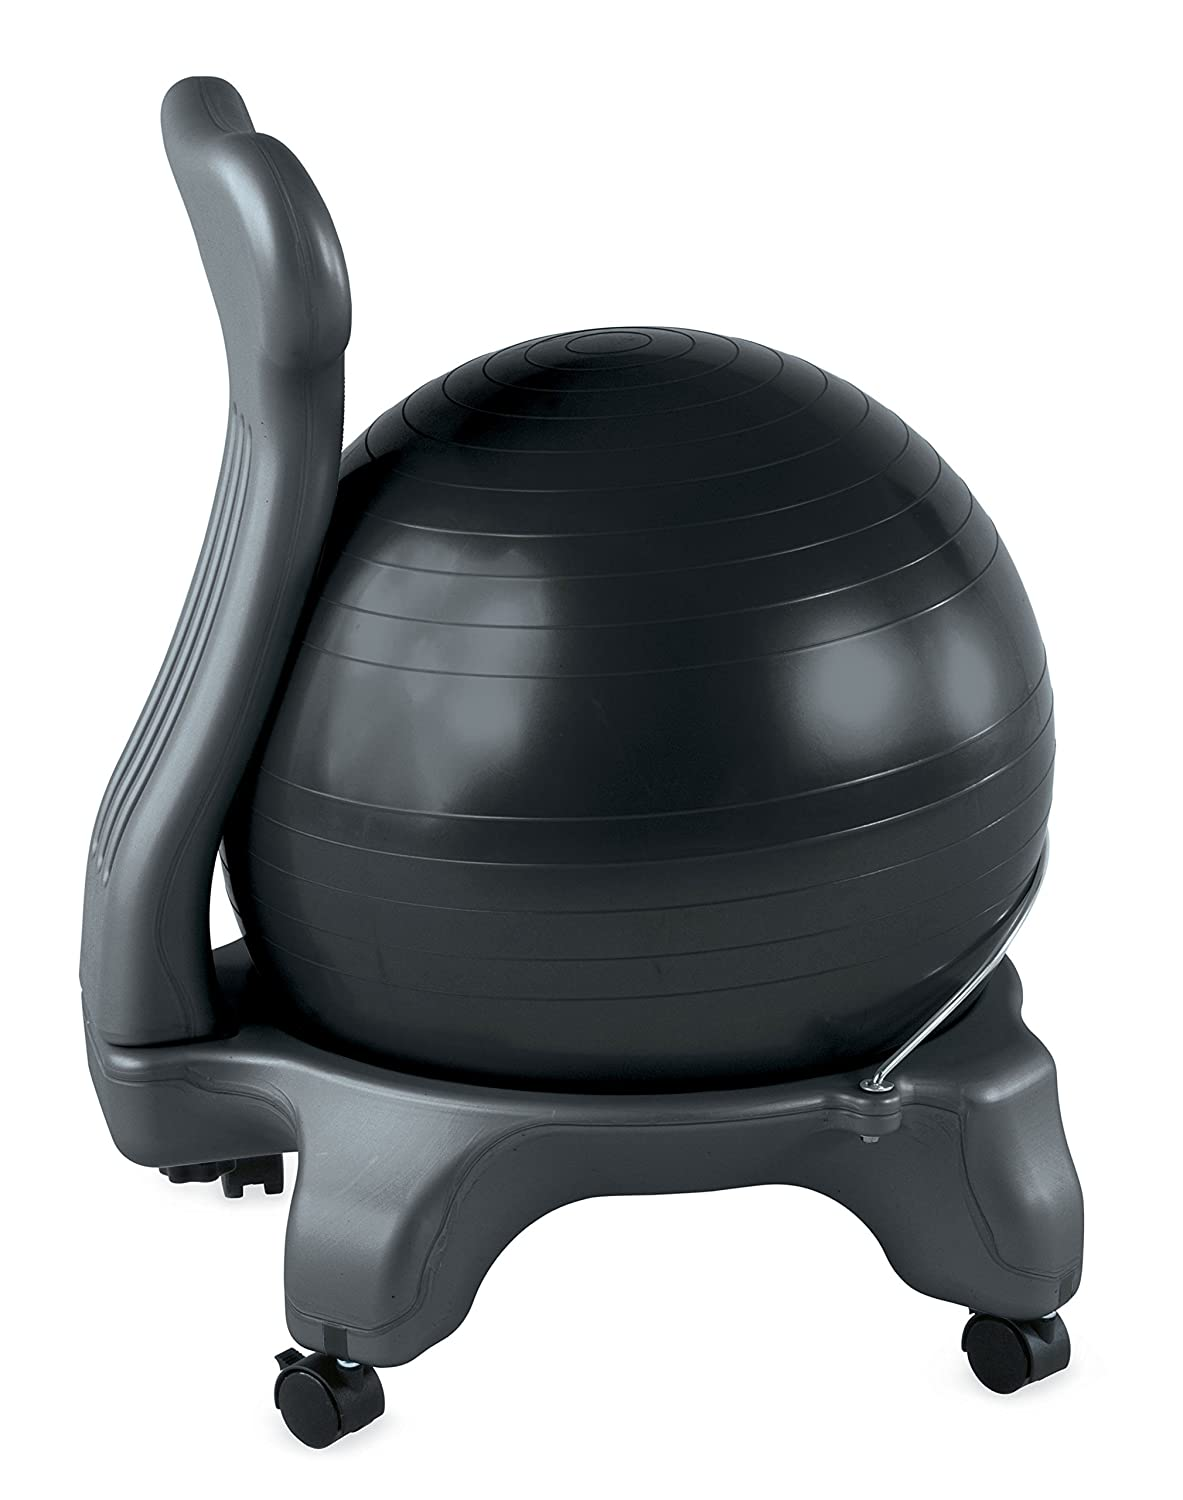 gaiam balance ball chairs free shipping. Black Bedroom Furniture Sets. Home Design Ideas